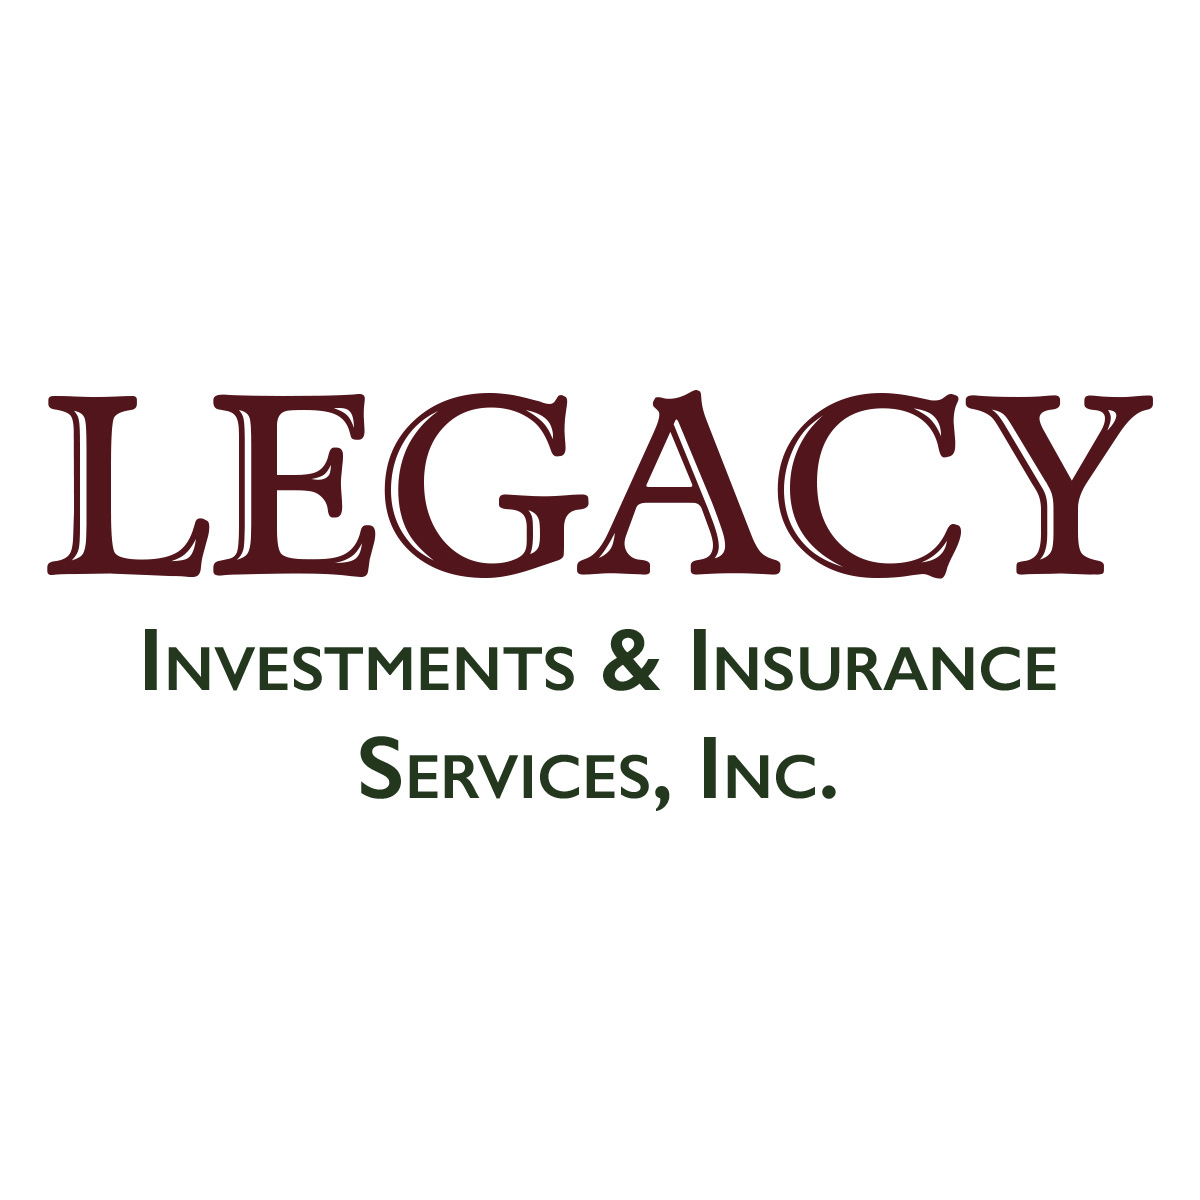 Legacy Investments & Insurance Services, Inc